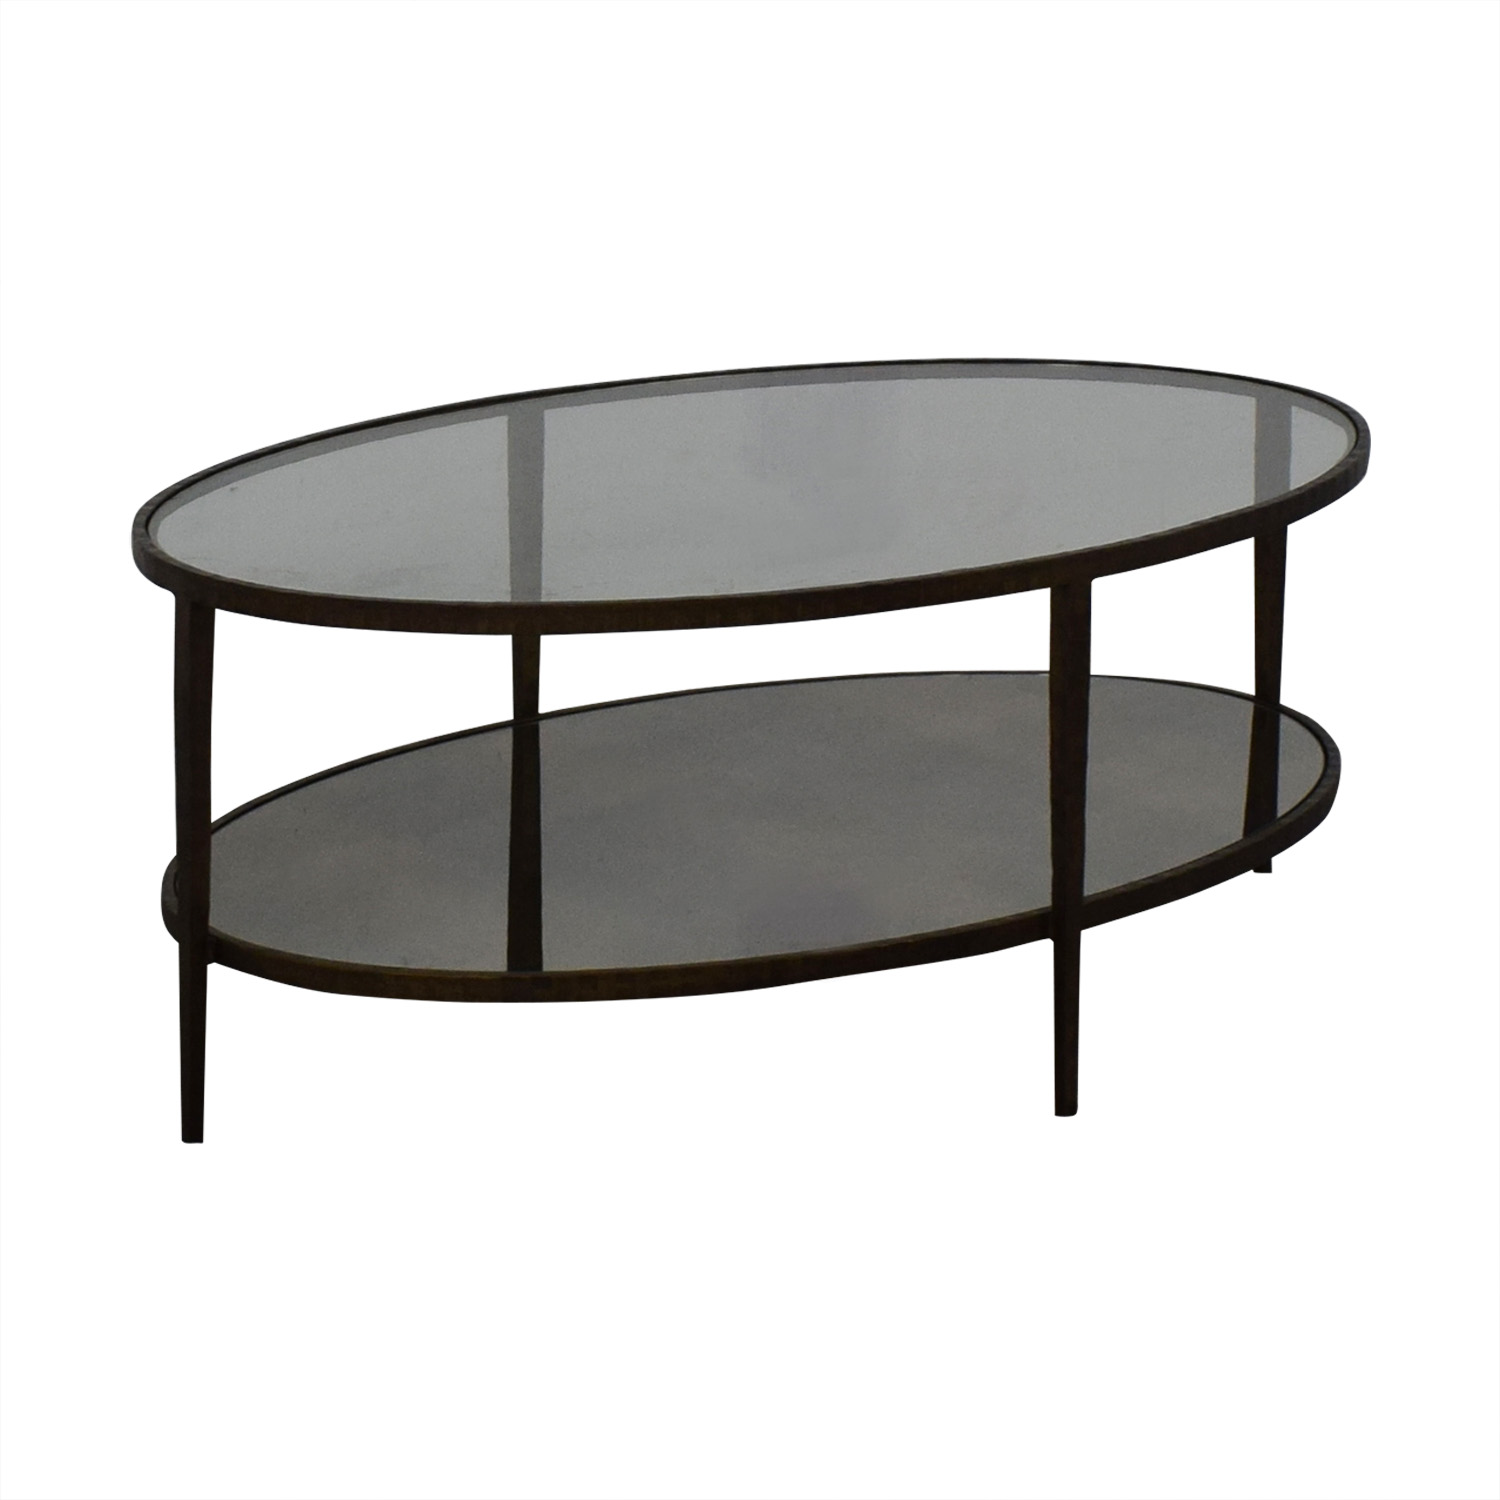 Glass Coffee Table dimensions